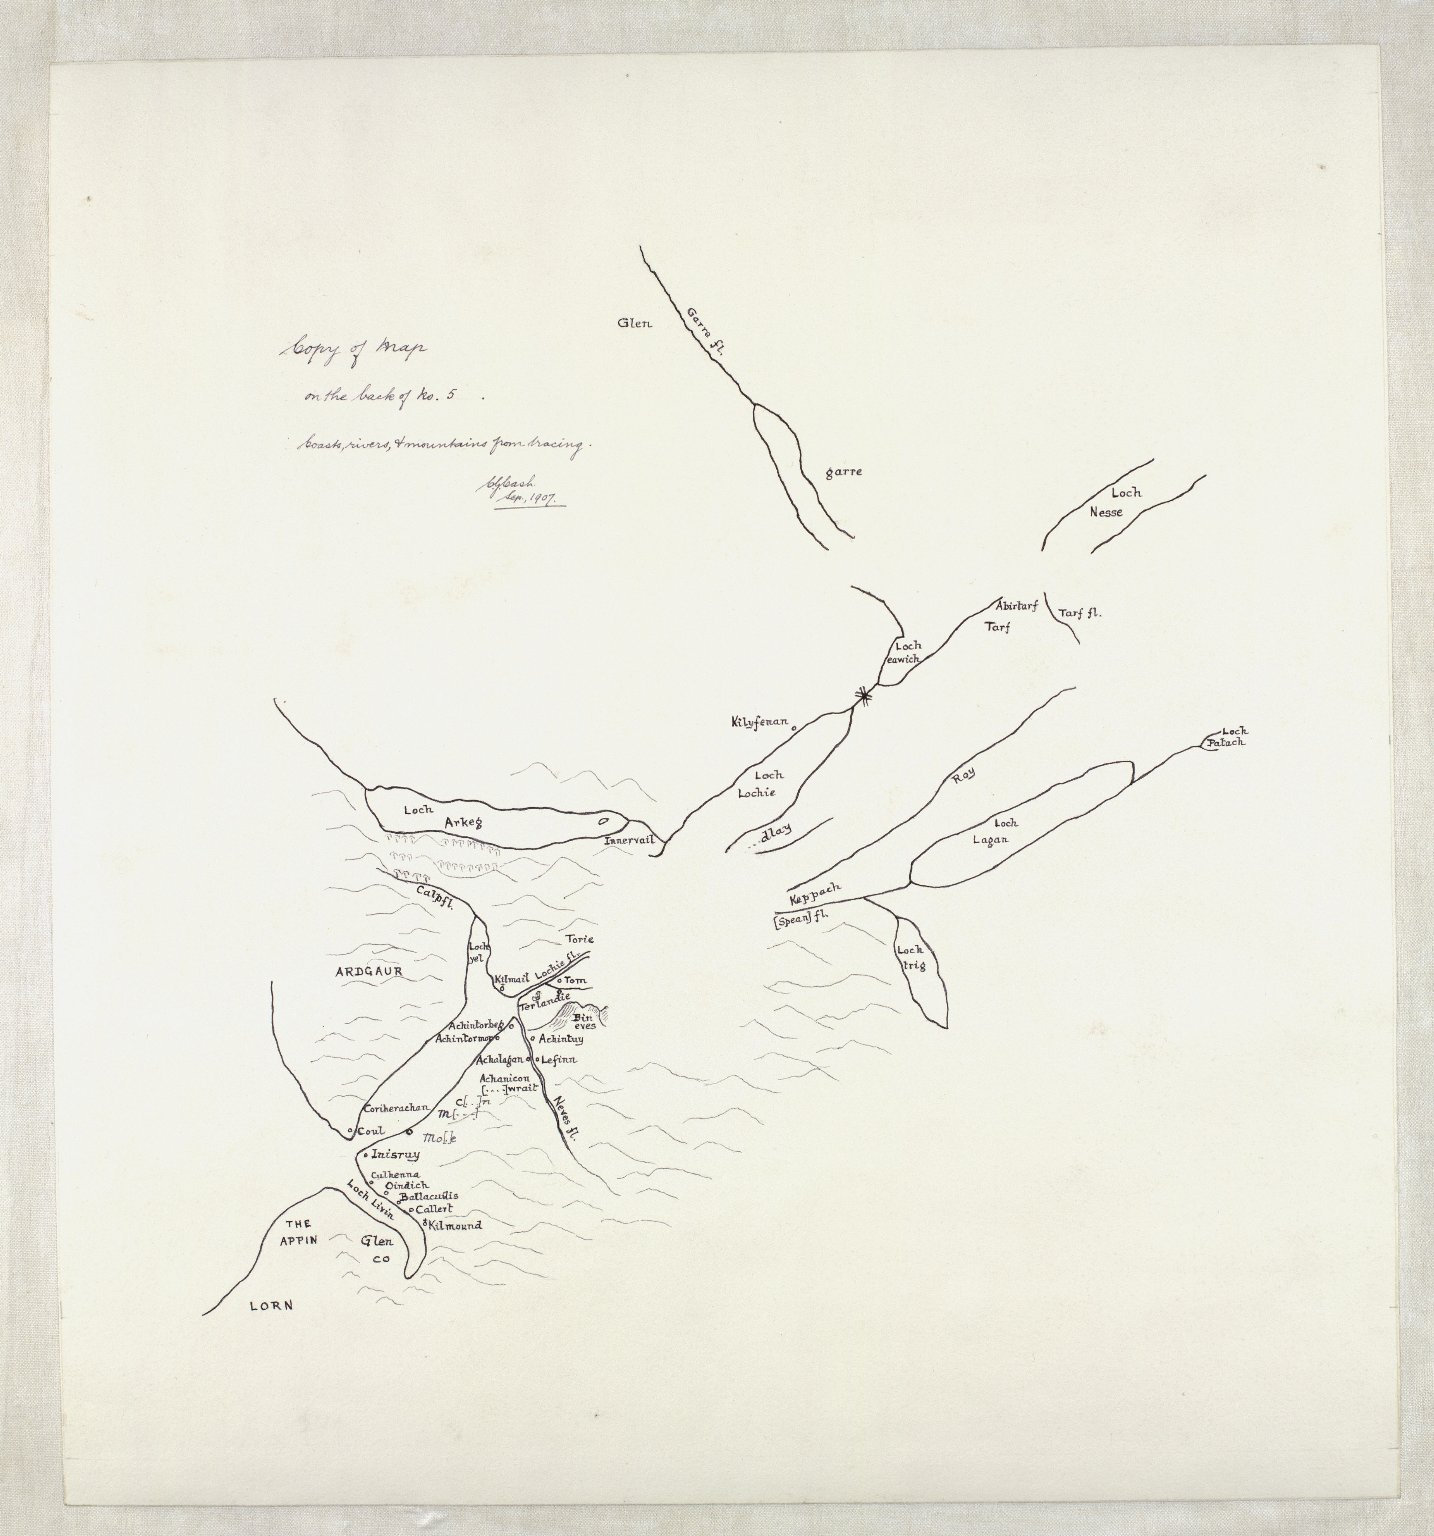 [A detailed map including Glenmore, Lochs Arkaig and Garry, the basins of the Nairn, Findhorn, and Spey, Lochs Ericht and Laggan, and the River Spean; also in outline Lochs Garry, Rannoch, and Tummel. [3 of 4]